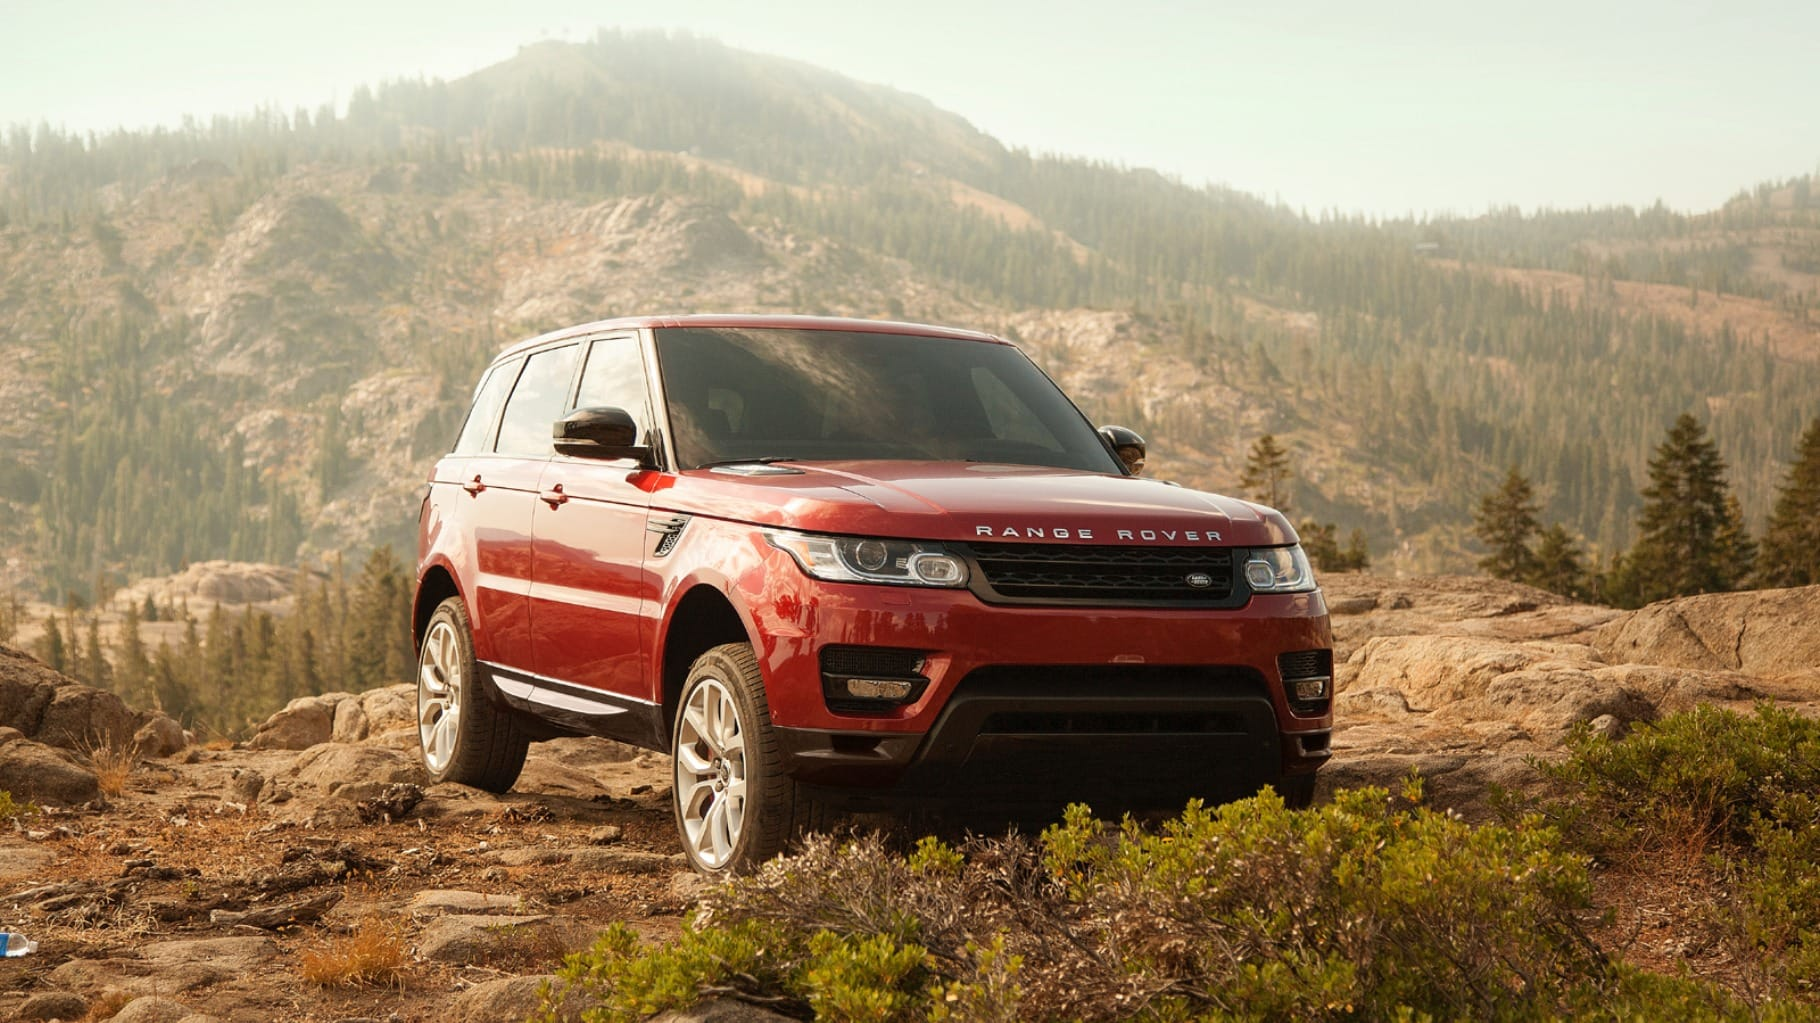 Land Rover Vs Range Rover Choose Your Next Land Rover Suv Range Rover Evoque Vs Sport